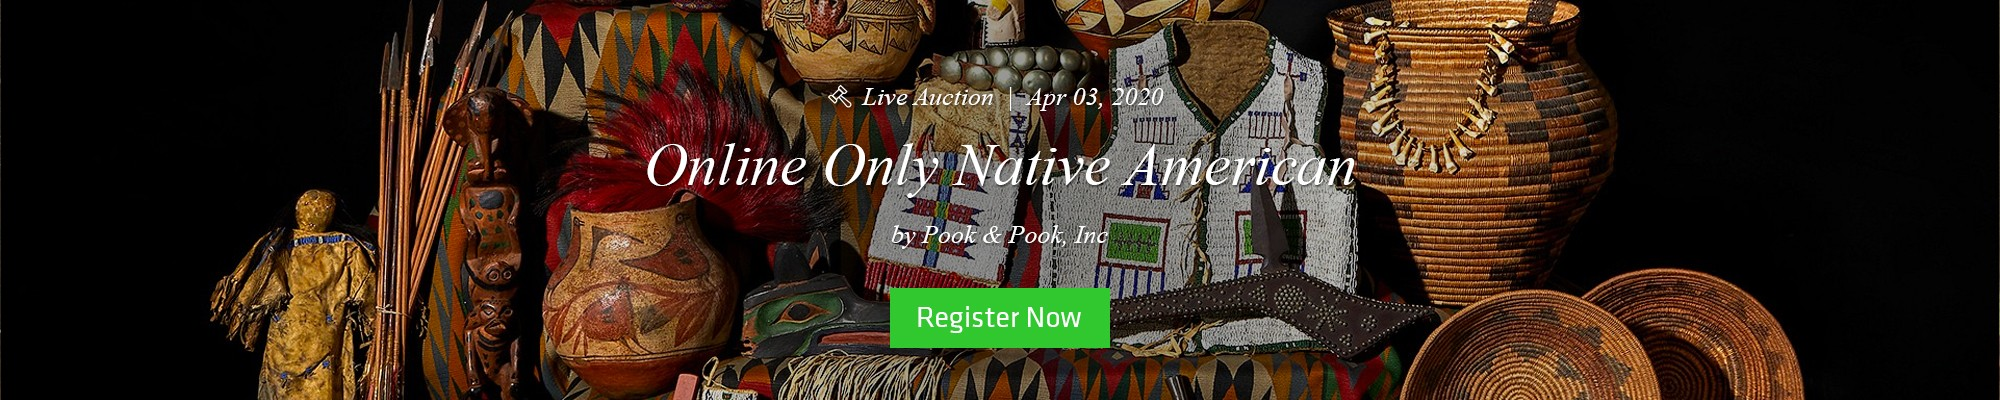 online-only-native-american-pook